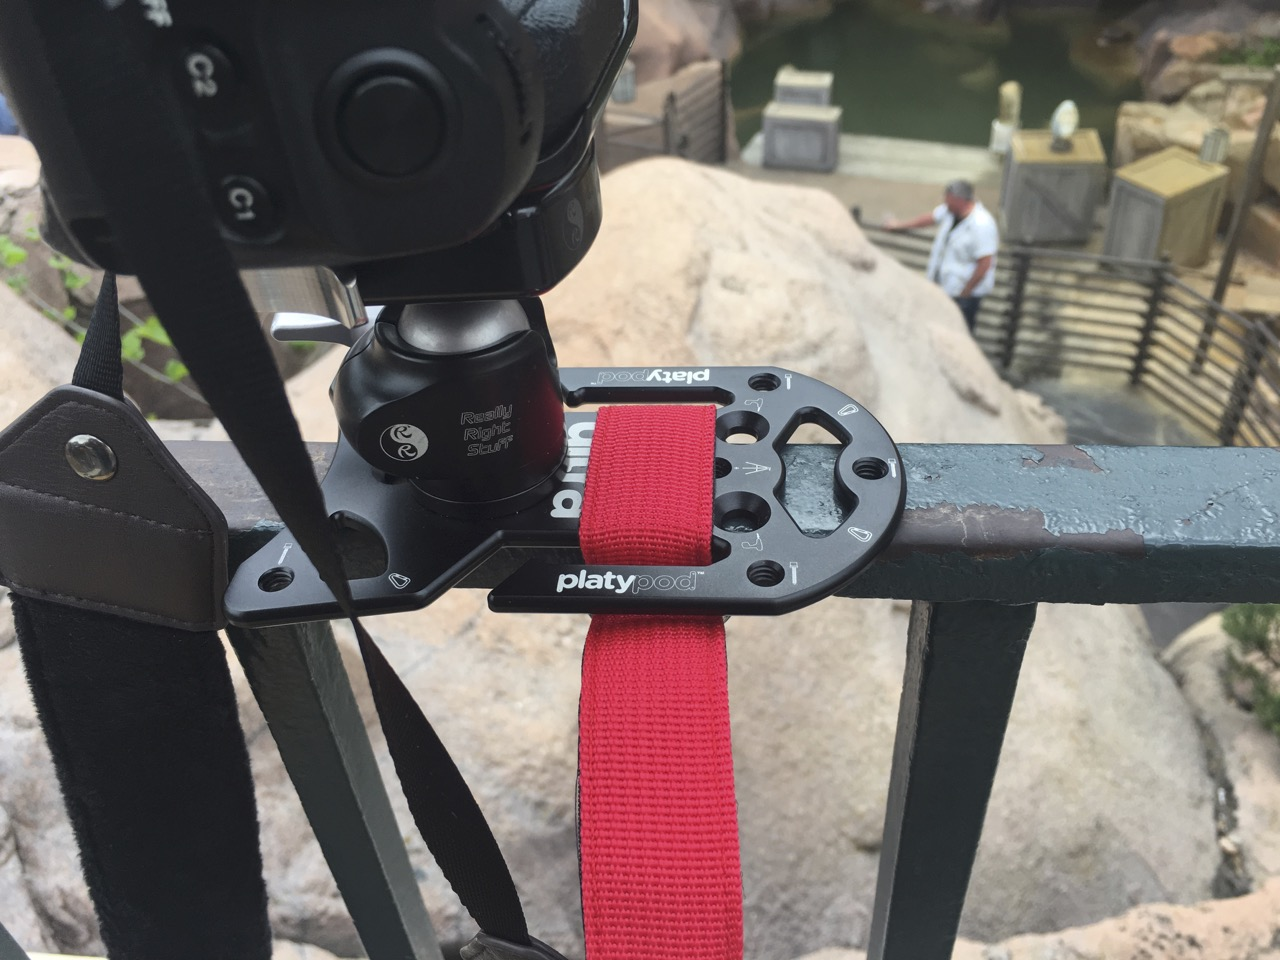 Easily attach to railings or poles